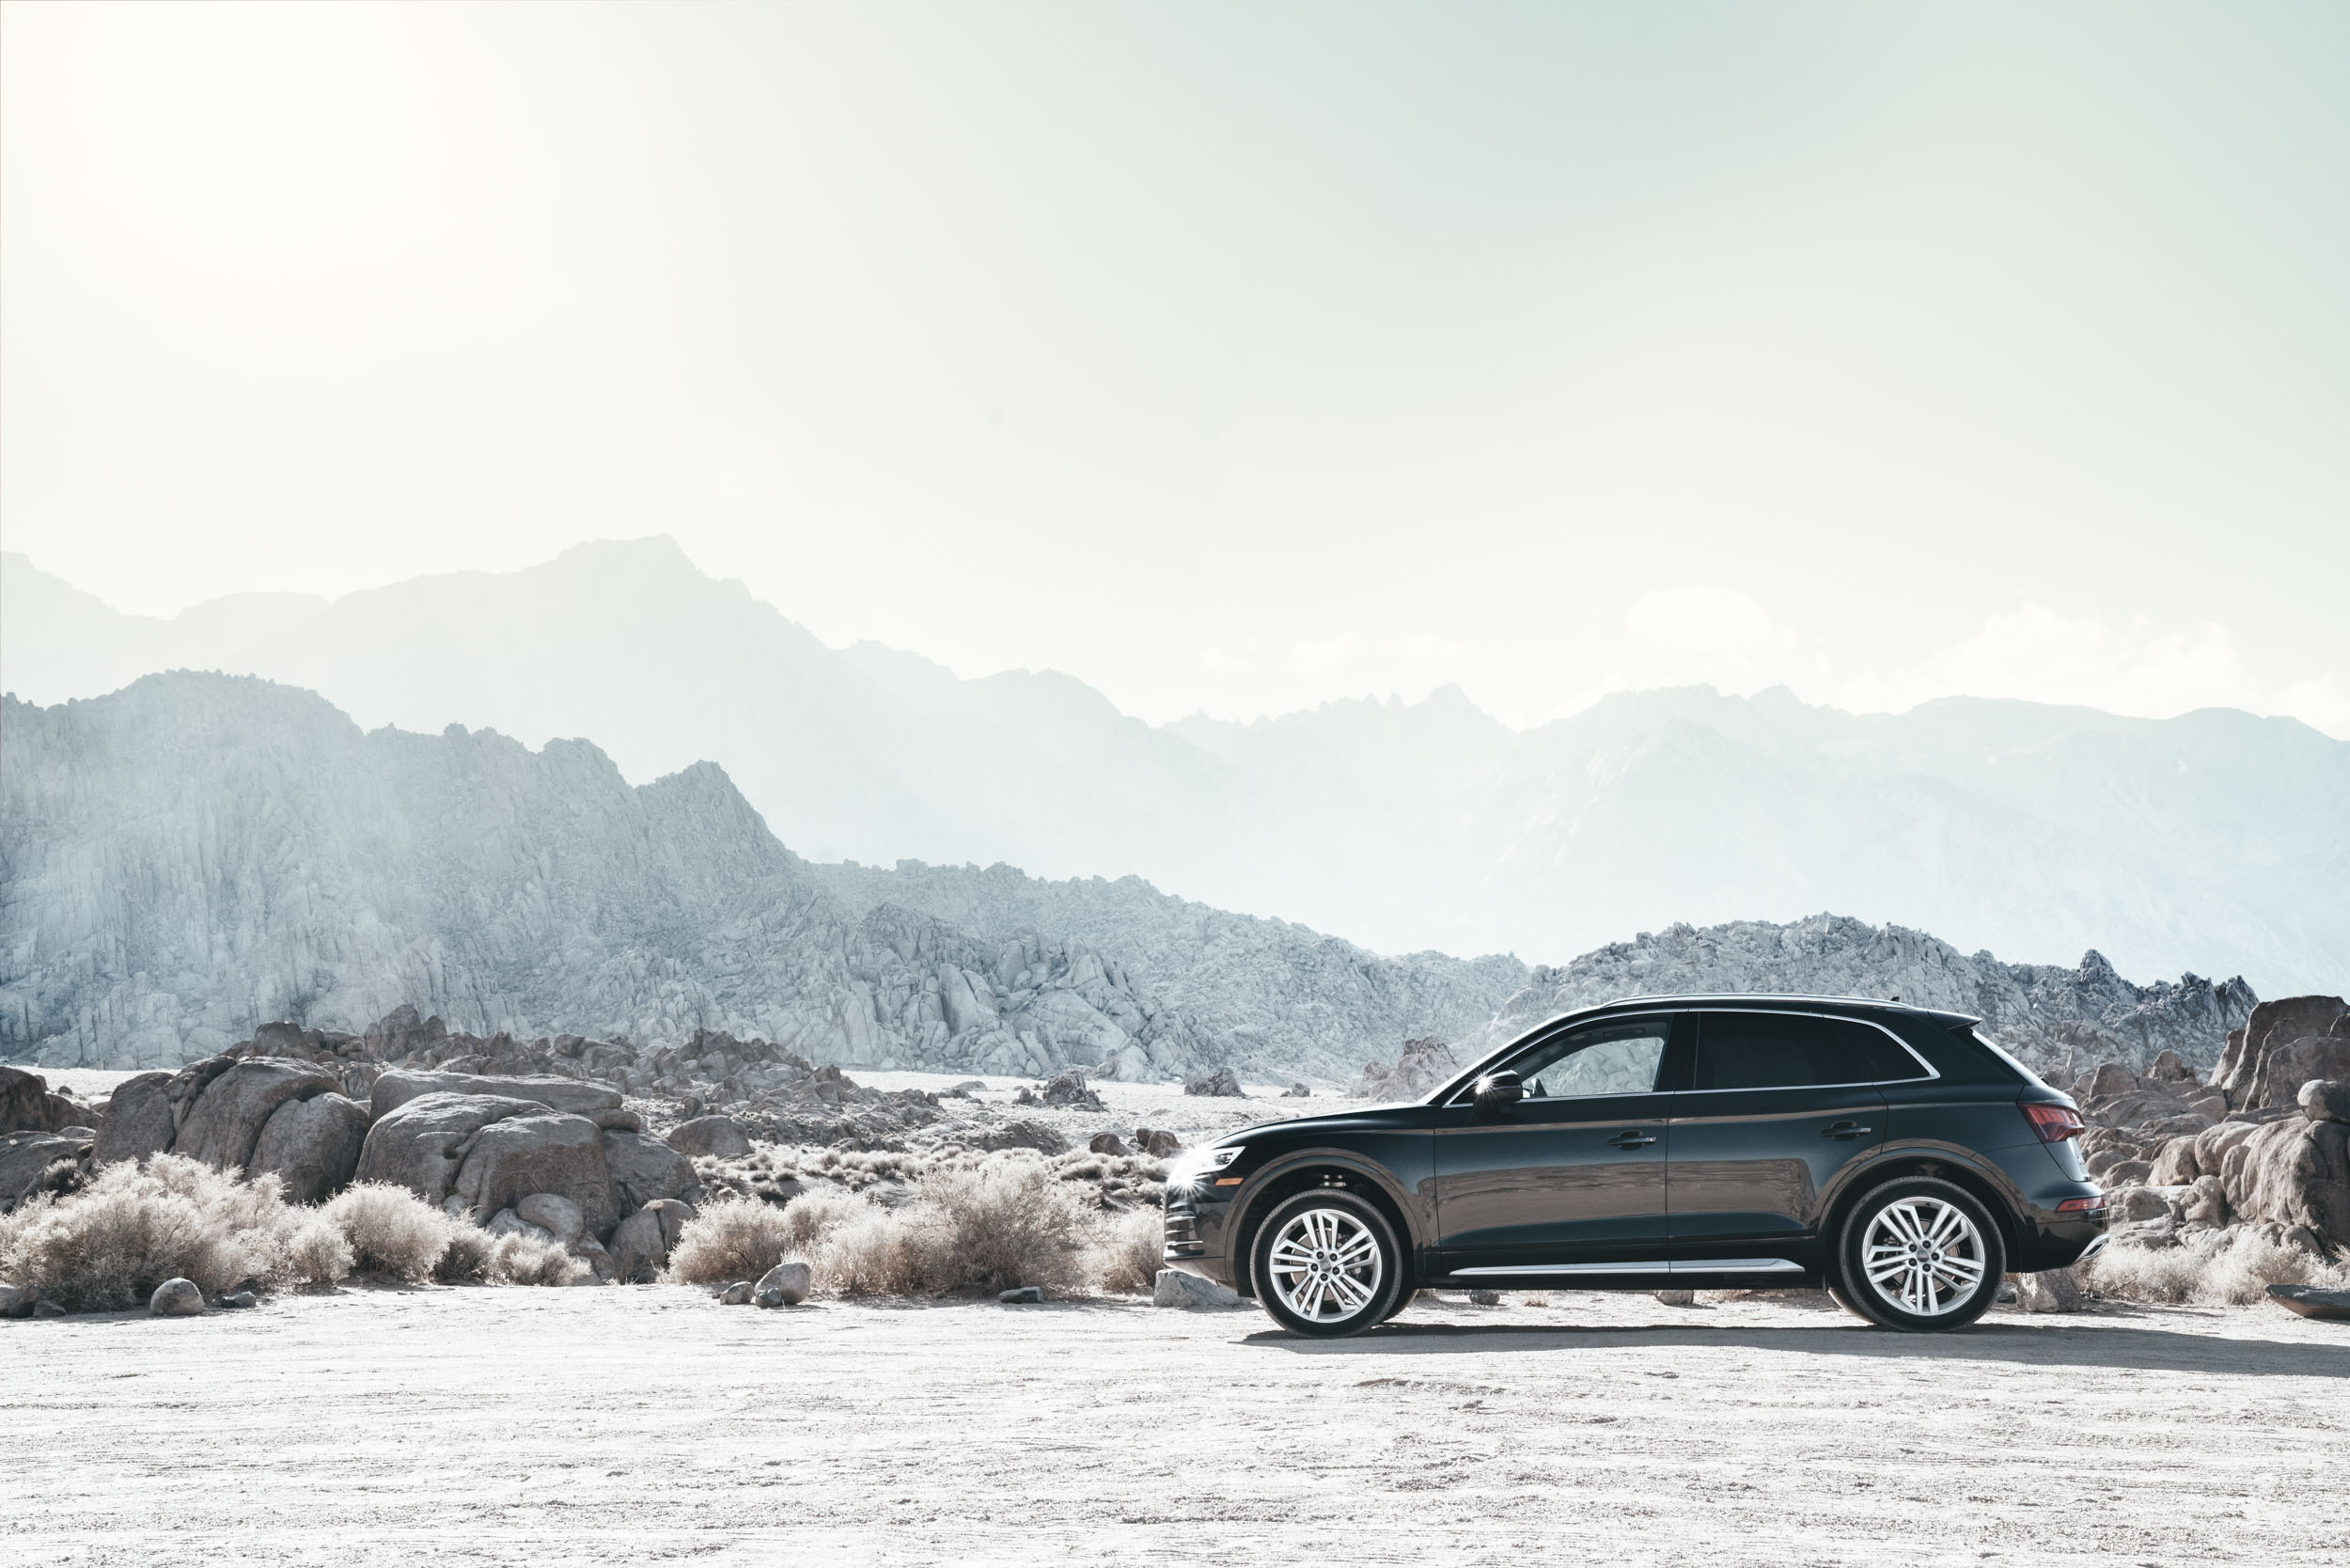 Black Audi Q5 sits in a bleak desert environment with mountains in background